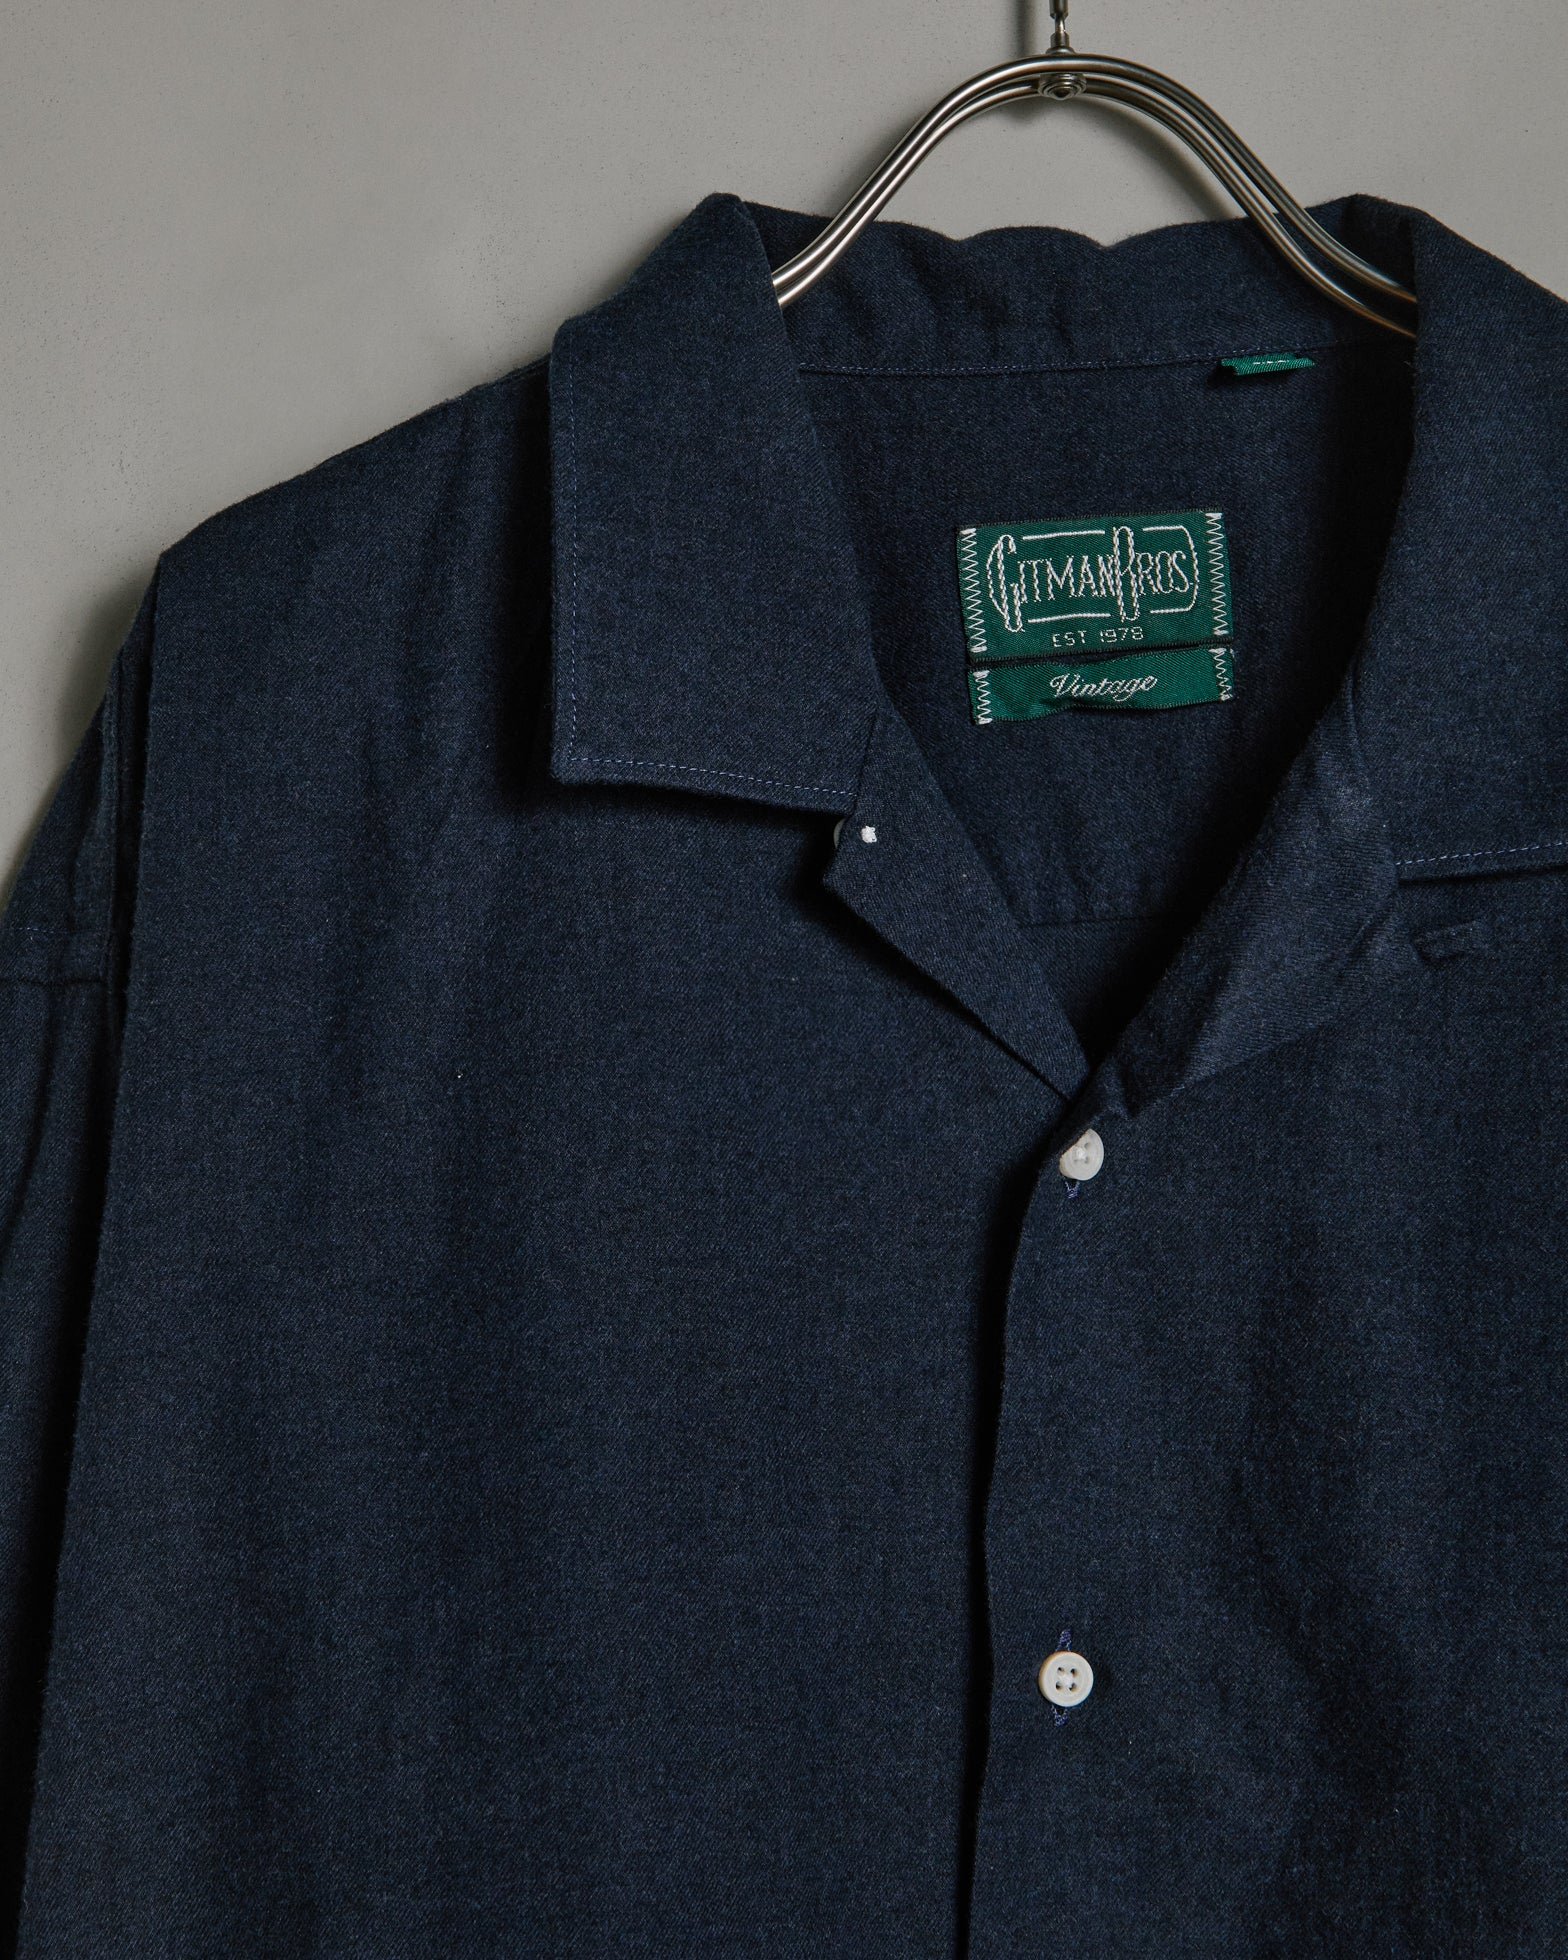 L/S Vintage Camp Shirt in Navy